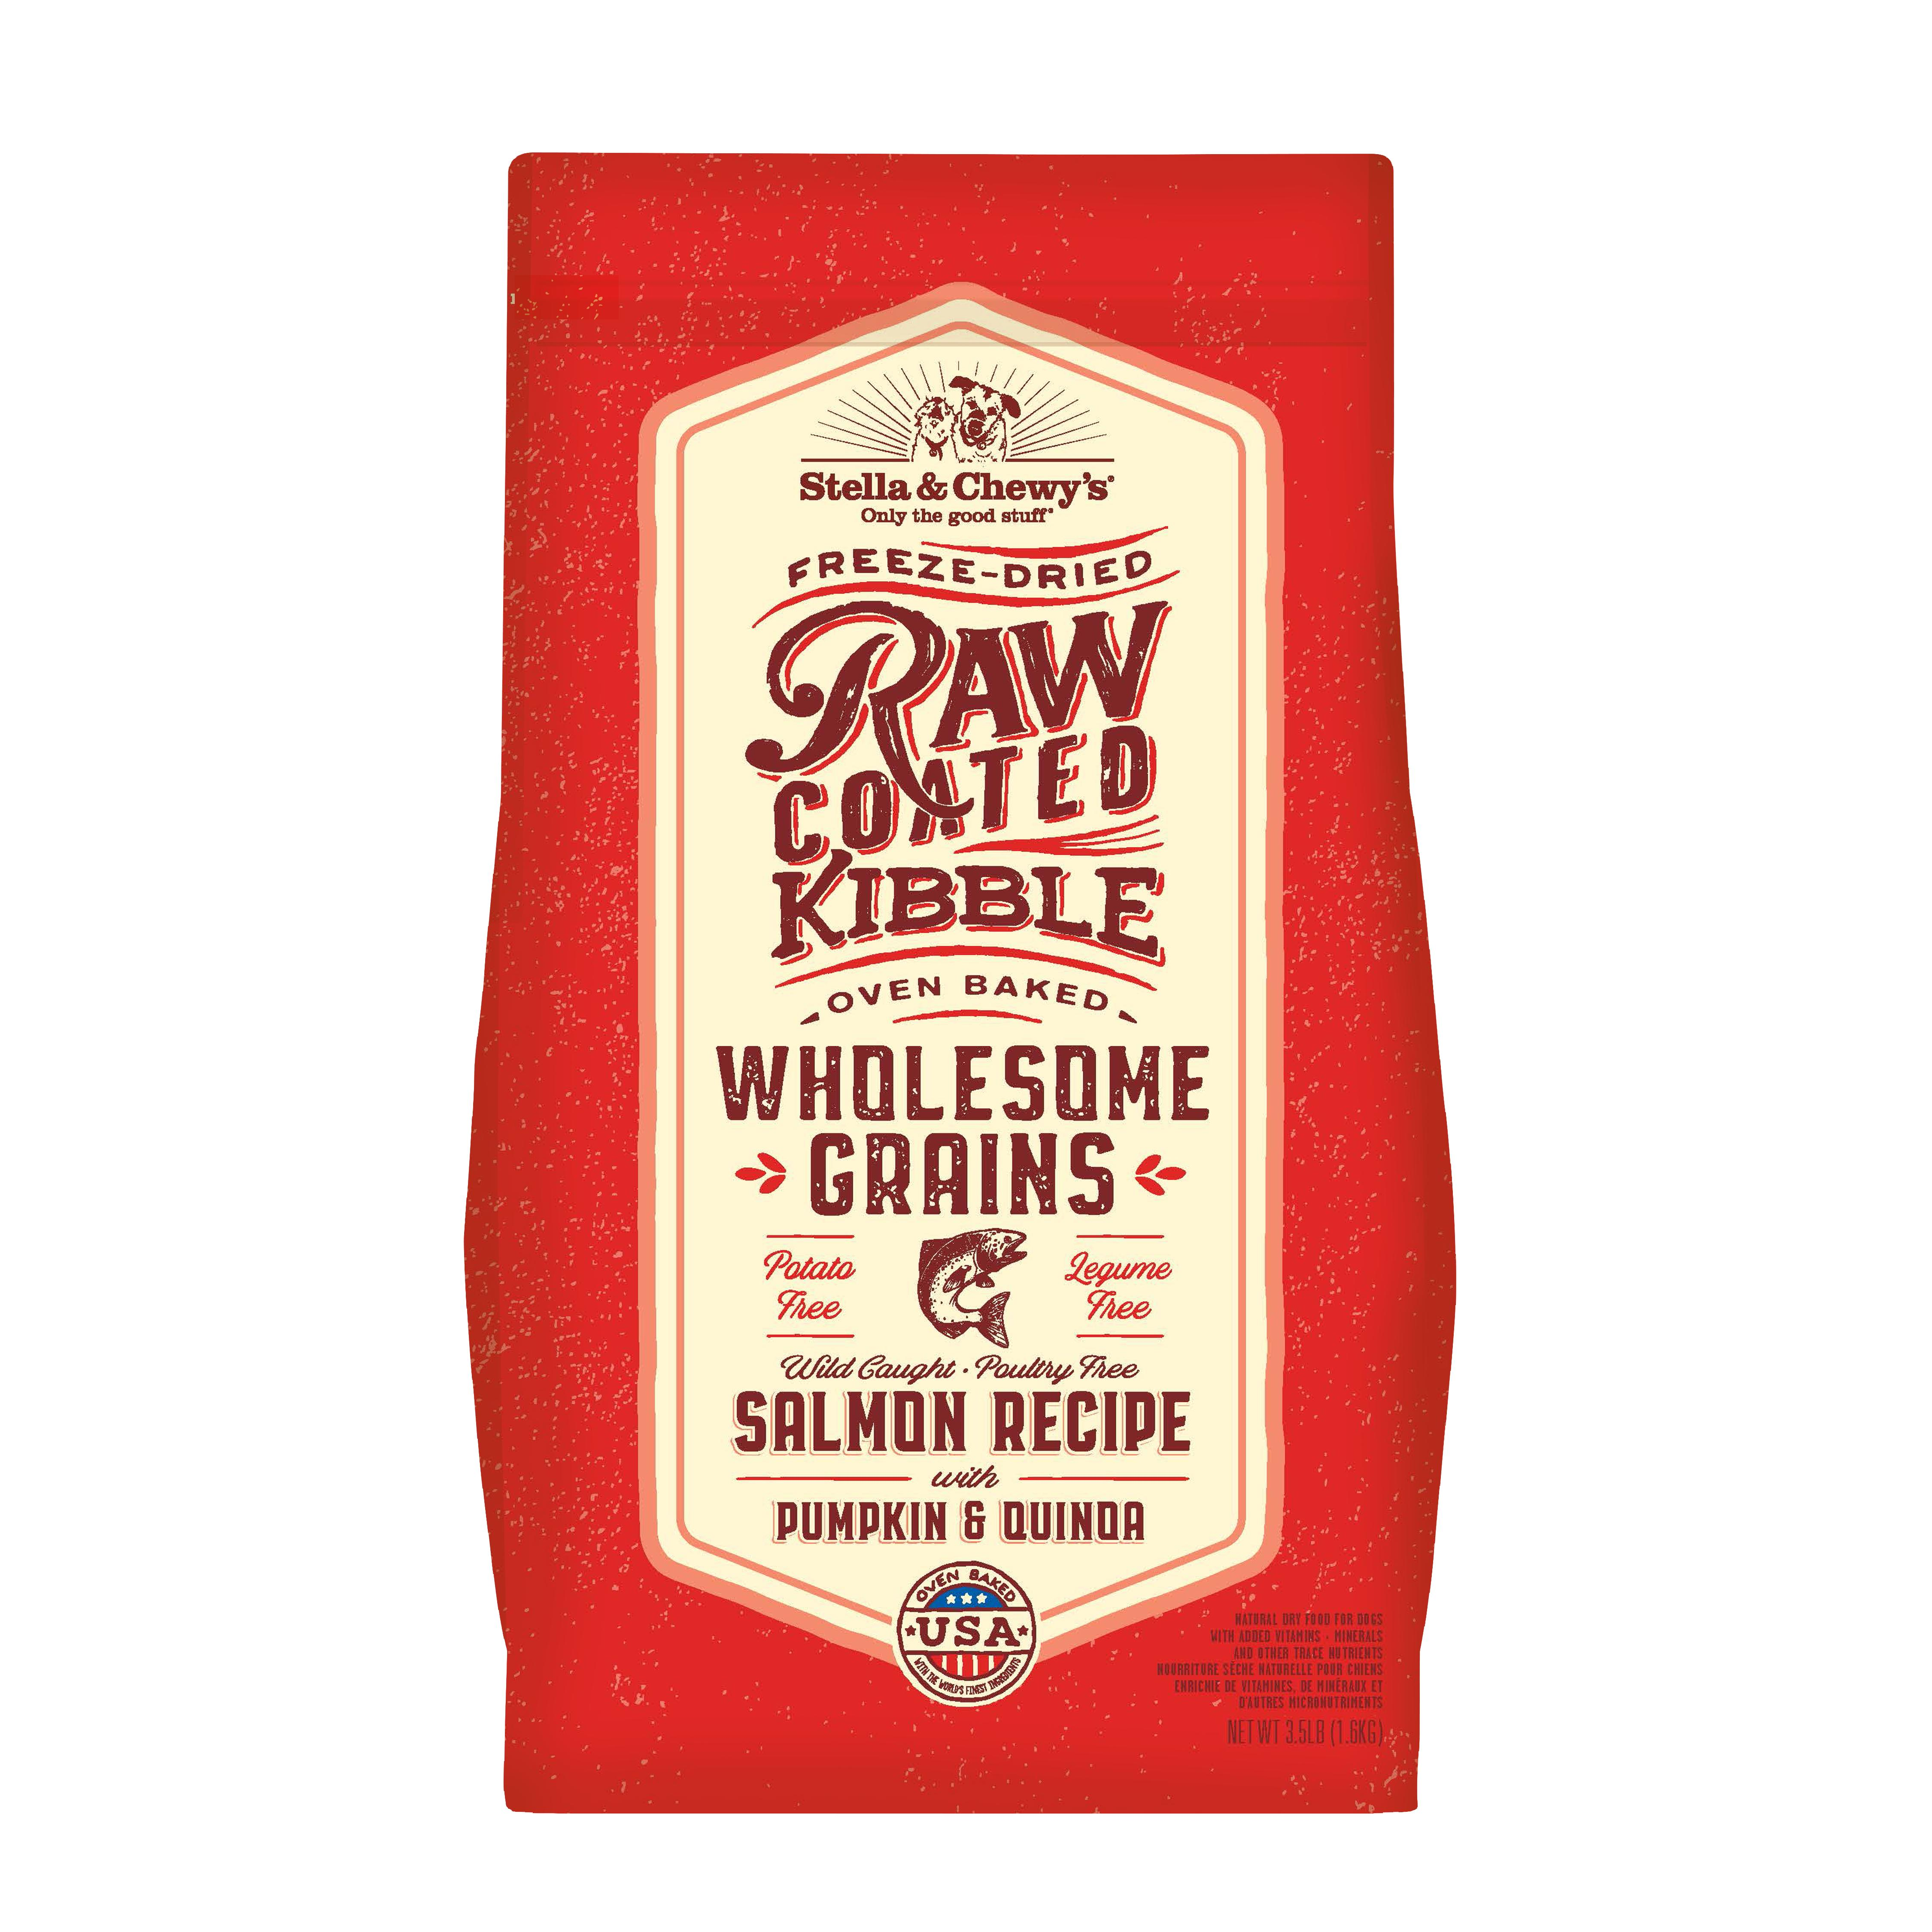 Stella & Chewy's Raw Coated Kibble Wholesome Grains Salmon, Pumpkin & Quinoa Dry Dog Food, 22-lb